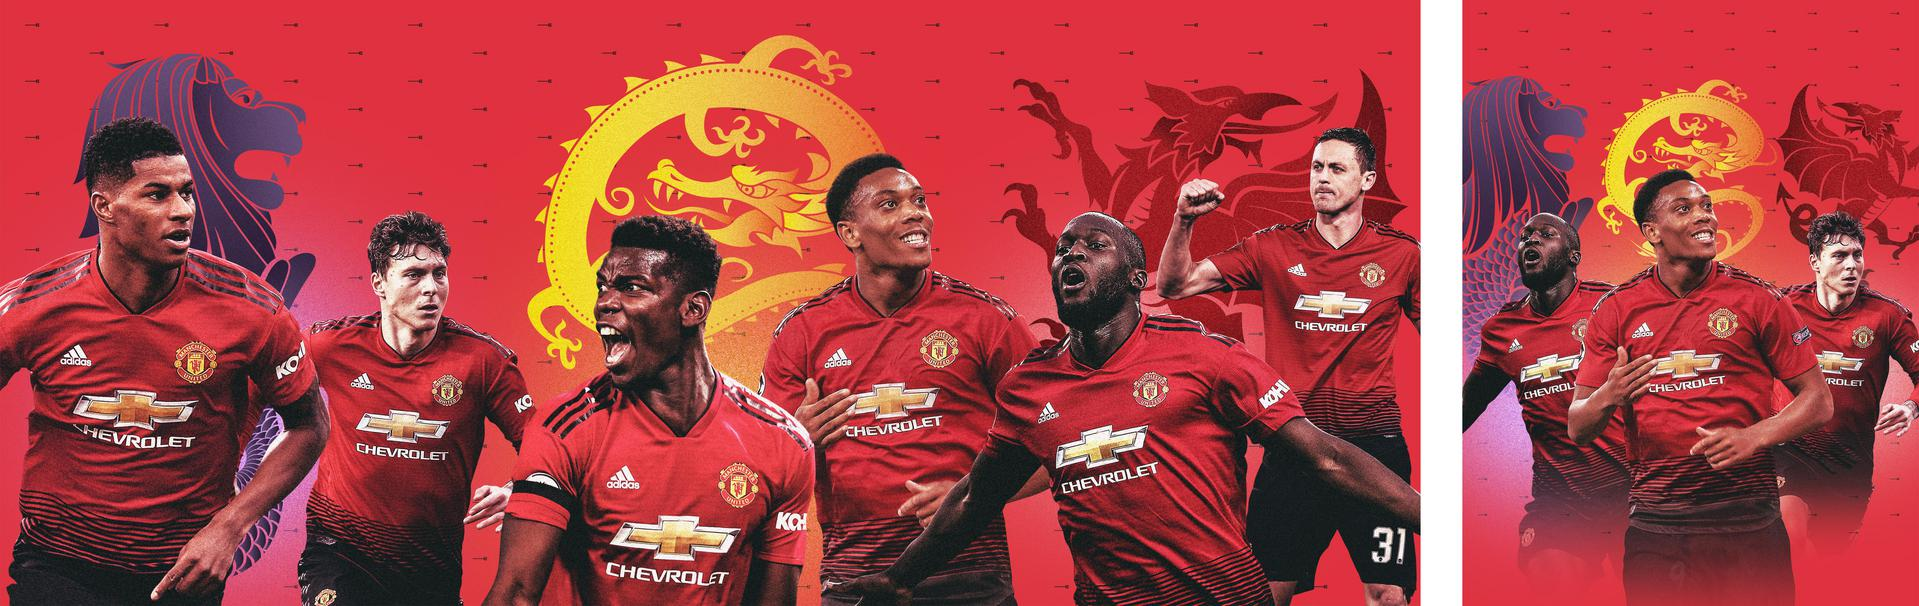 Tour 2019 promotional graphic for Manchester United matches in Cardiff, Shanghai and Singapore